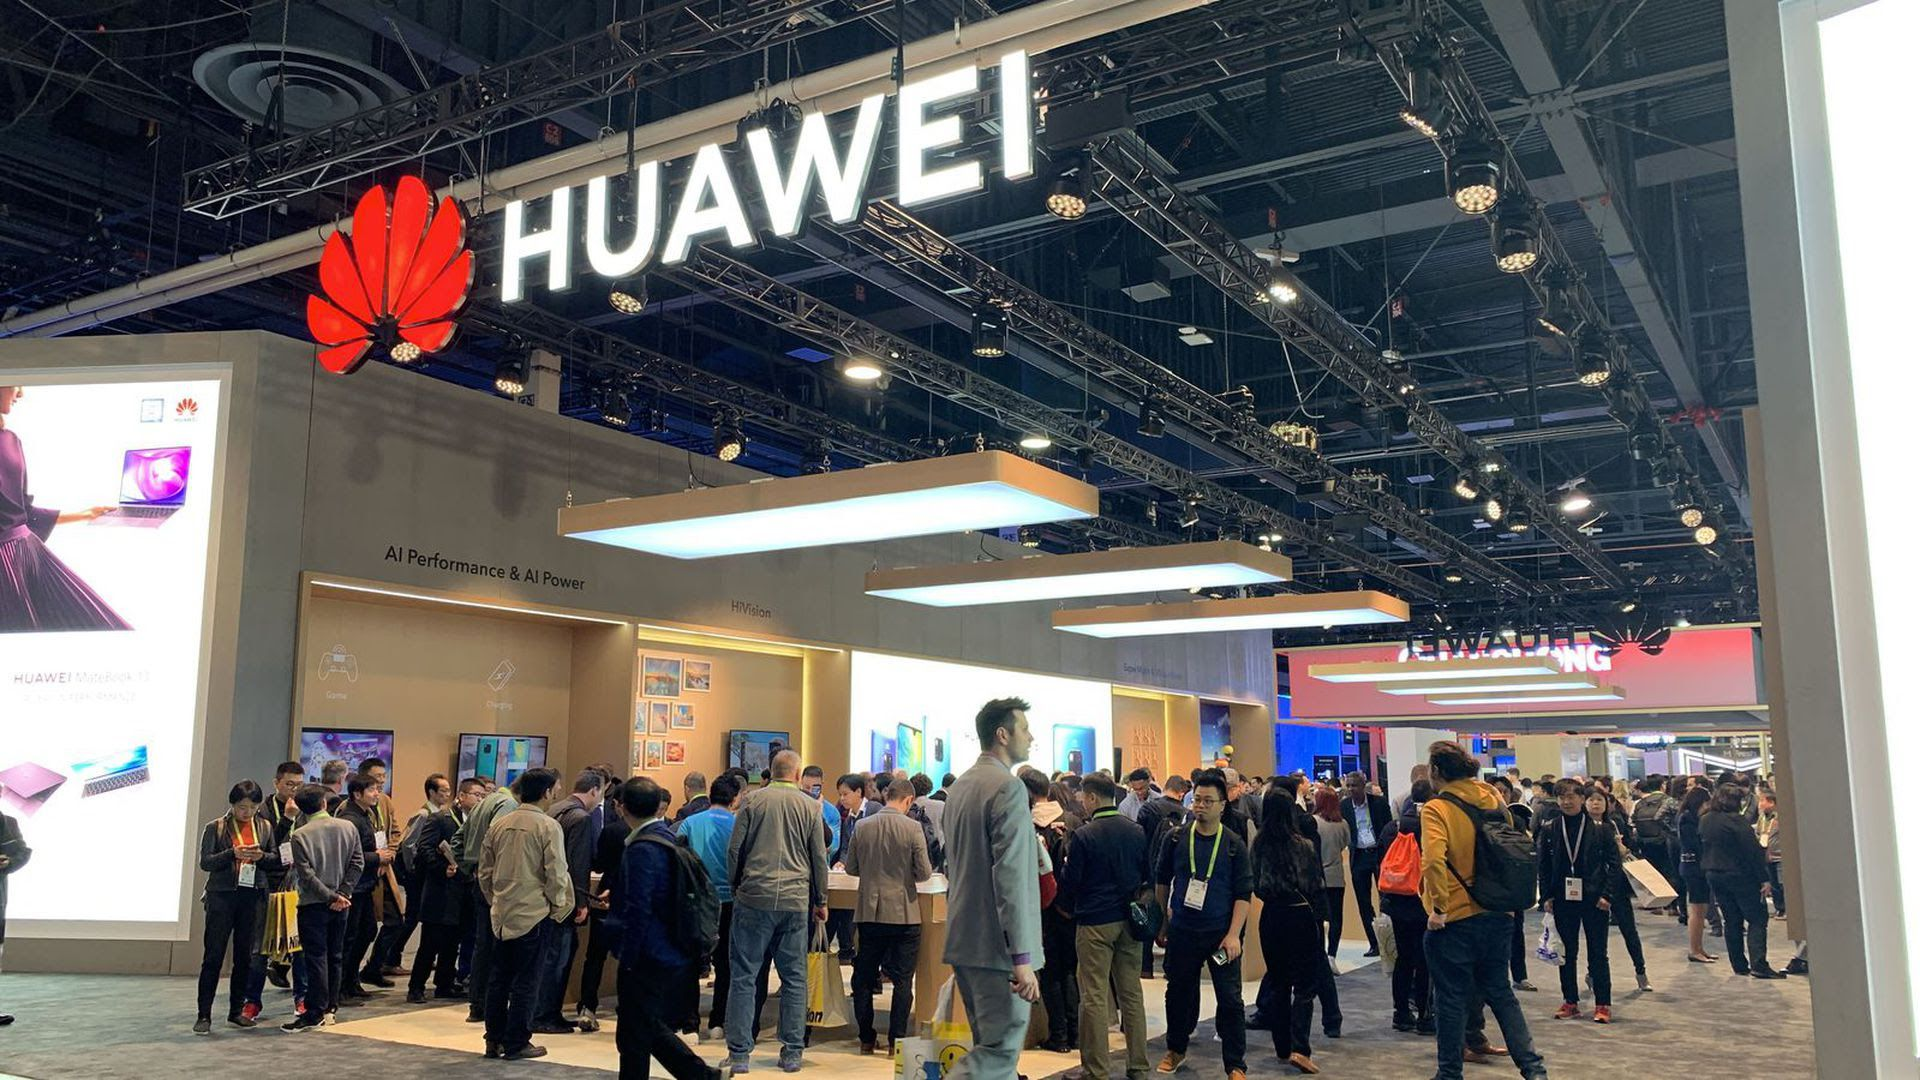 Huawei rules remain murky for tech industry despite White House talks